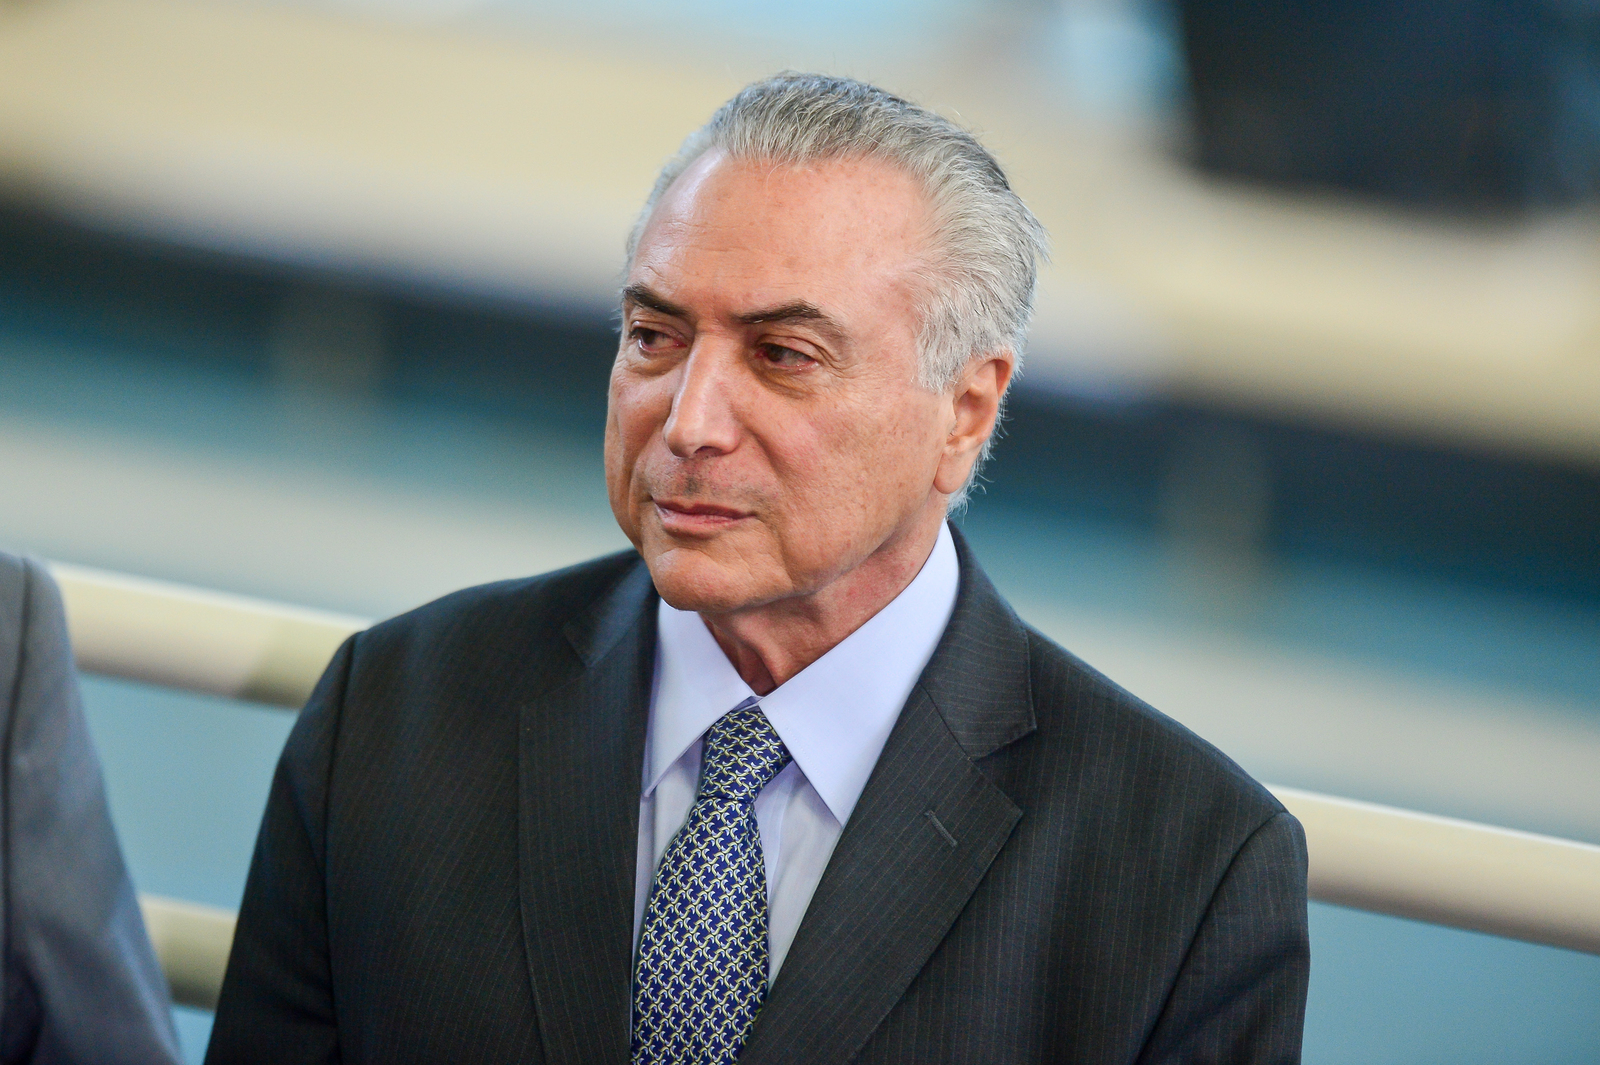 Special aide to Brazil's Temer arrested in corruption probe